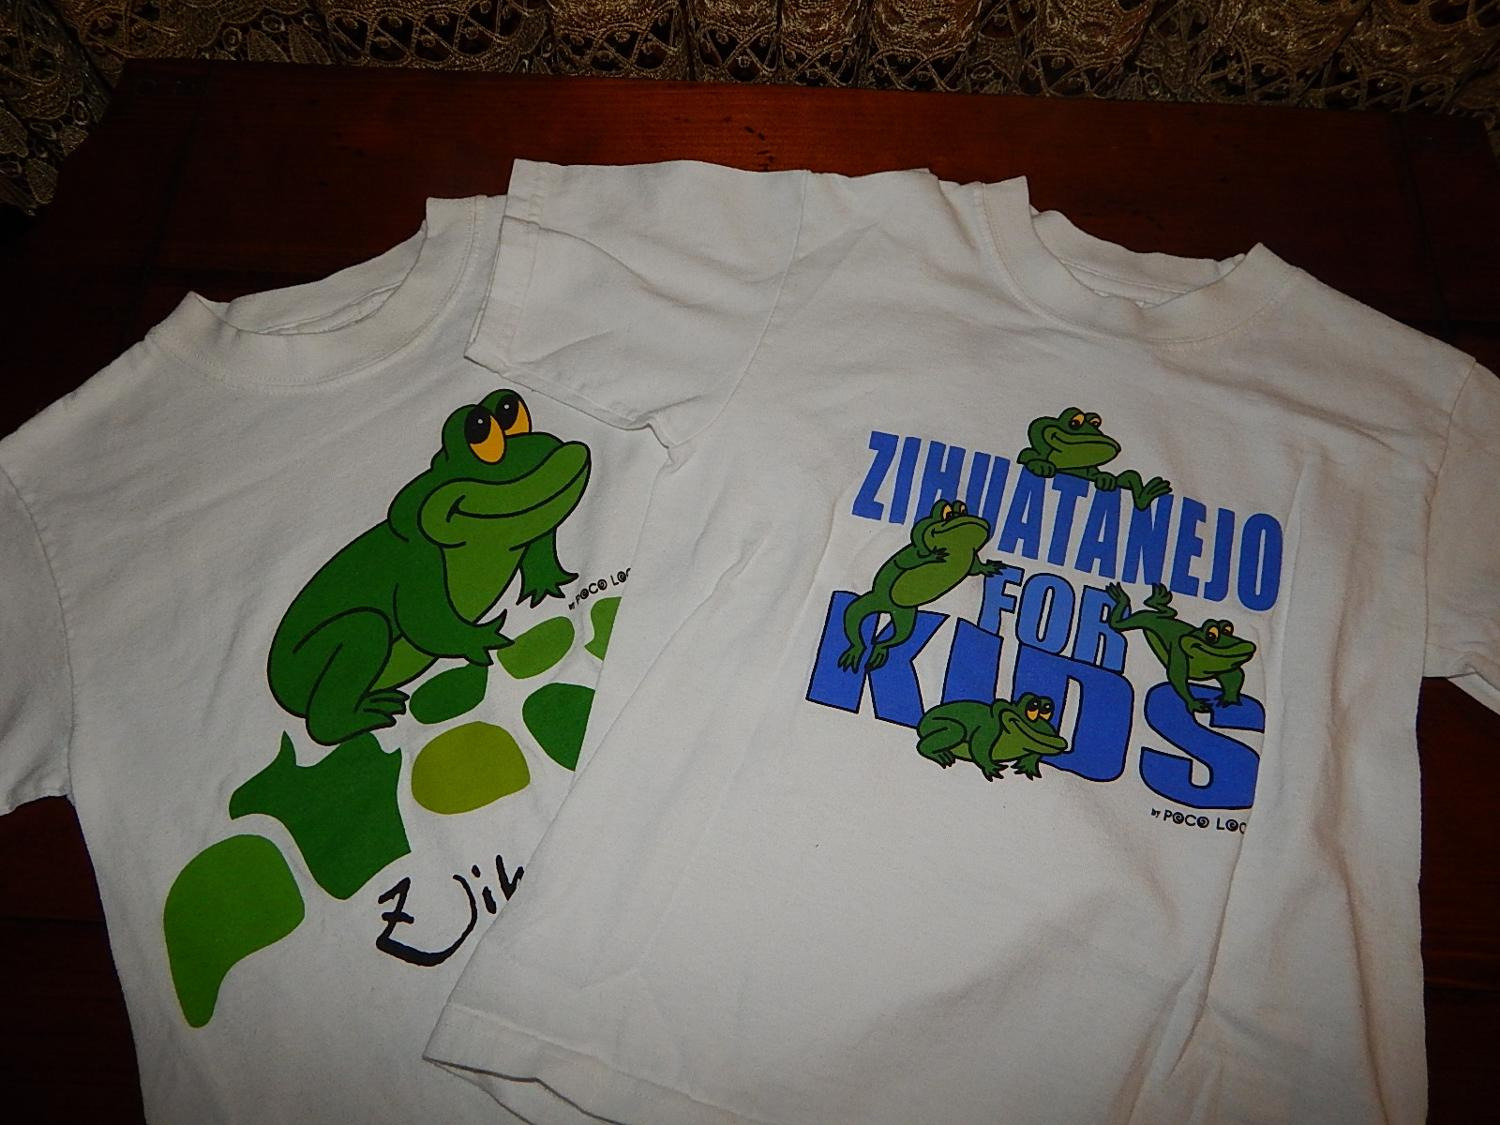 Best Lot Of 2 T Shirts For Sale In Appleton Wisconsin For